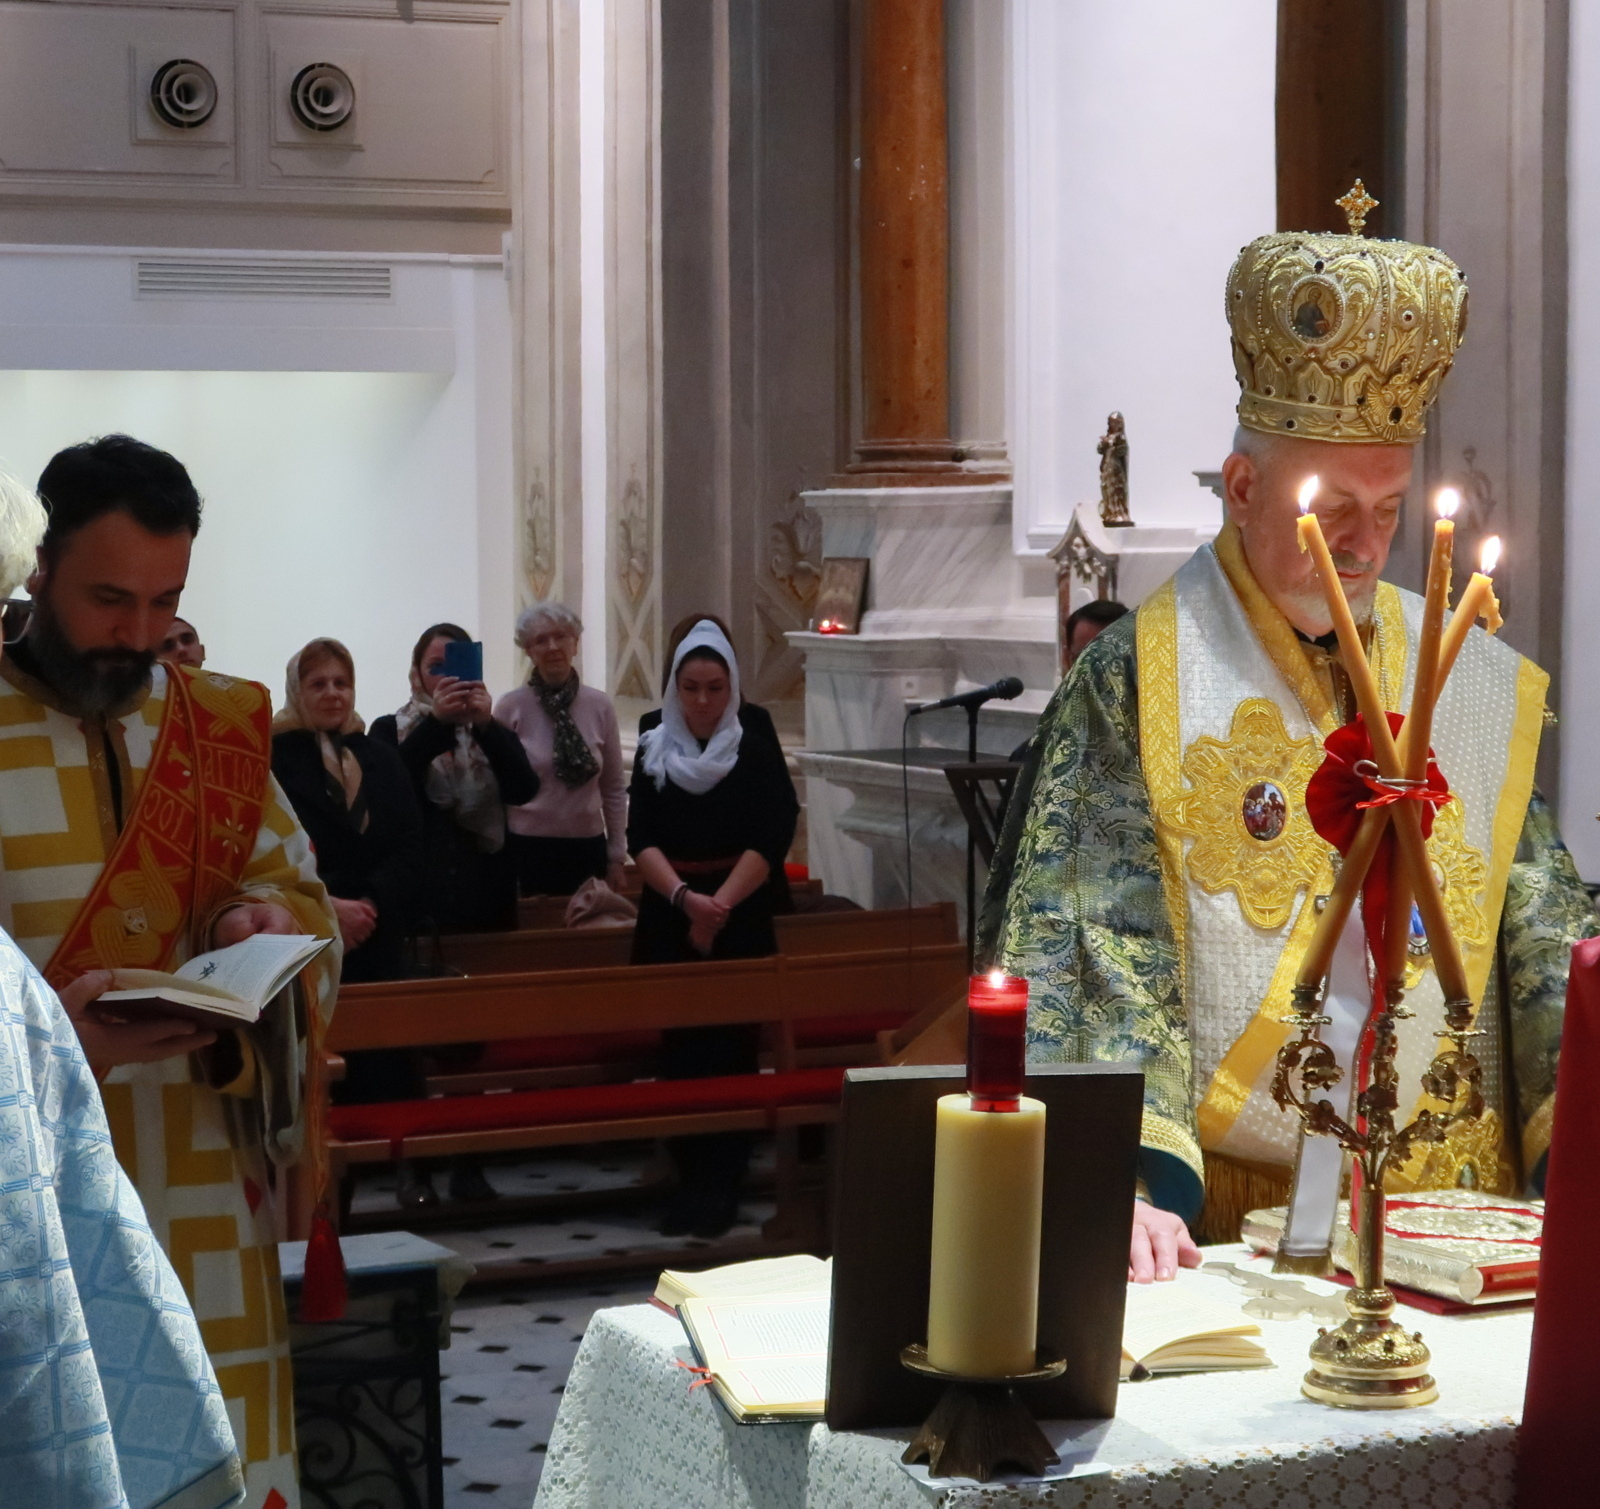 Metropolitan of France in Monaco to celebrate Feast of Theophany